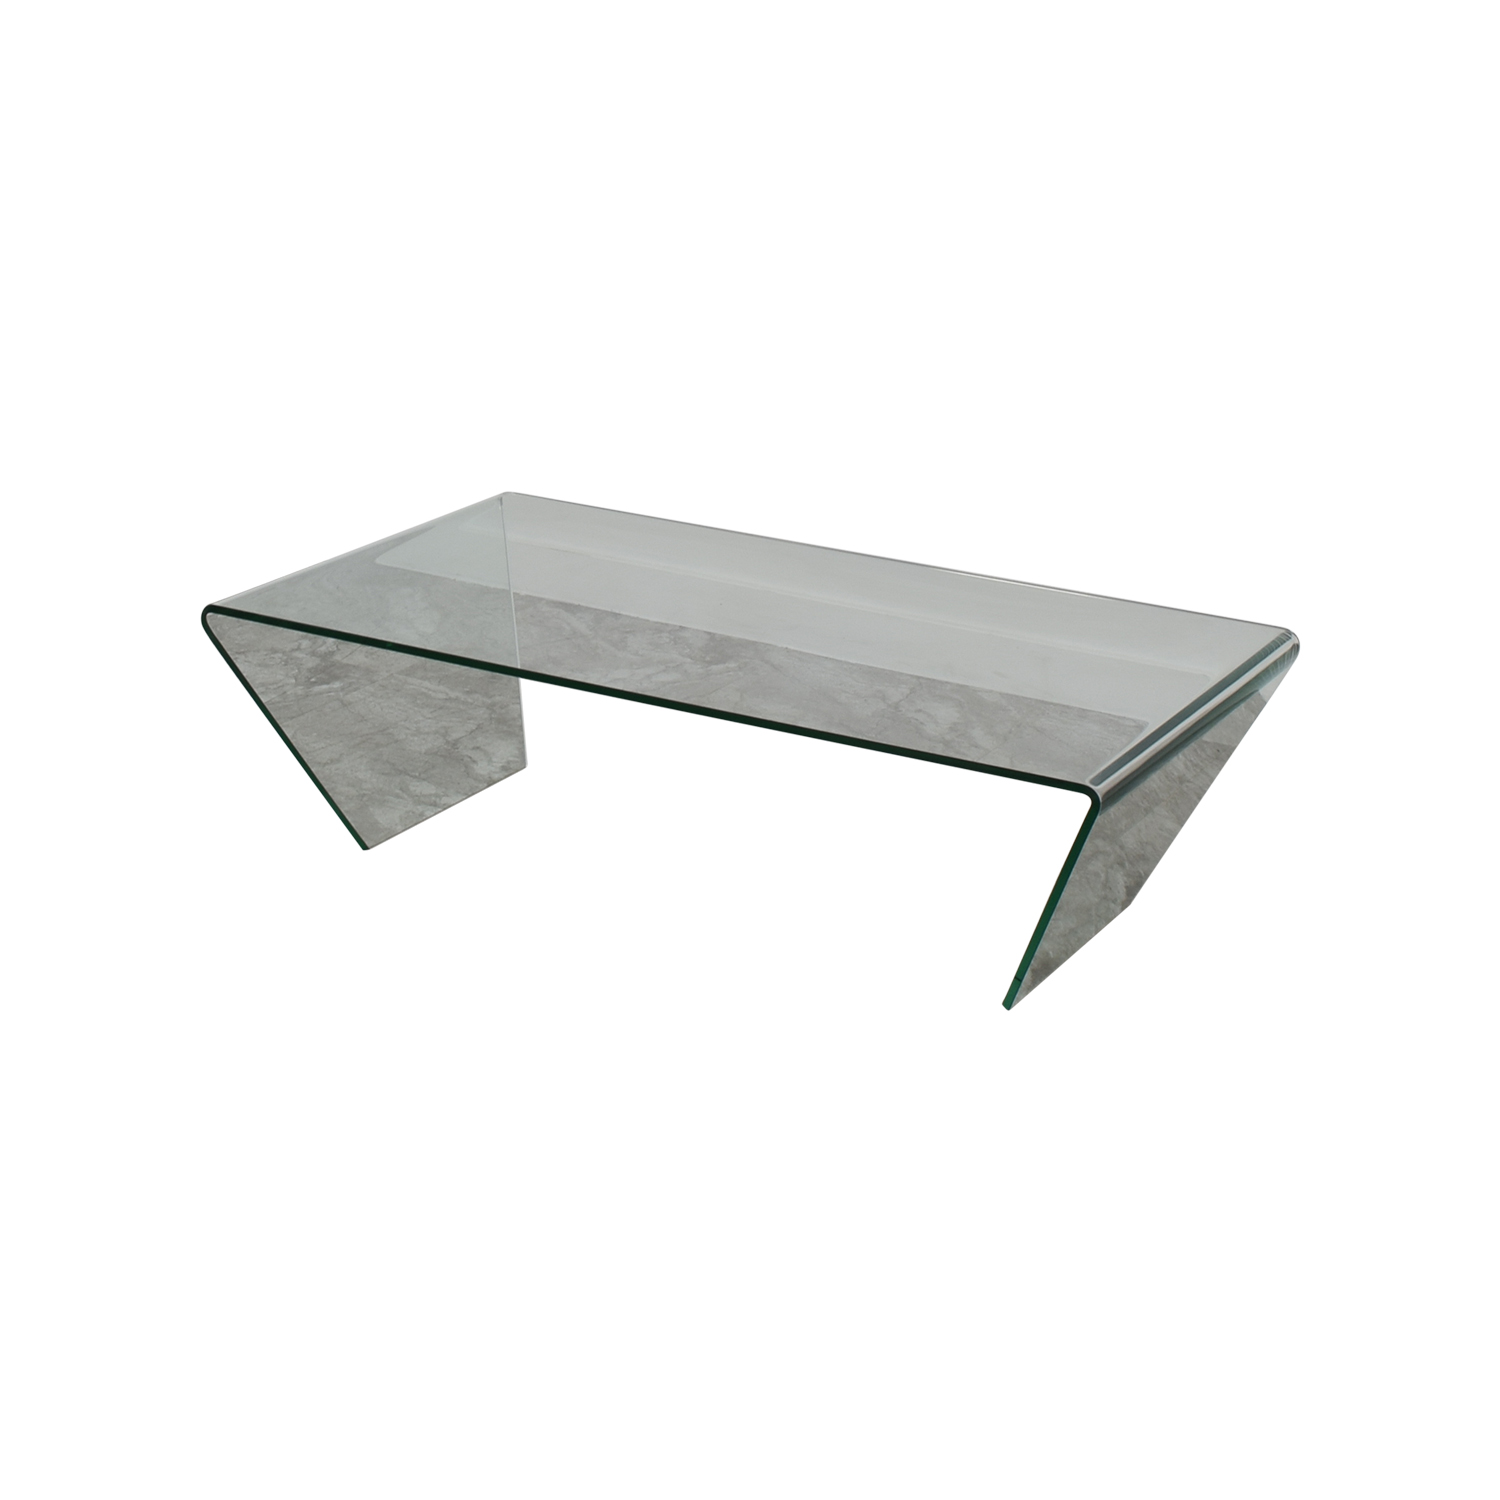 90% OFF - BoConcept BoConcept Glass Coffee Table / Tables